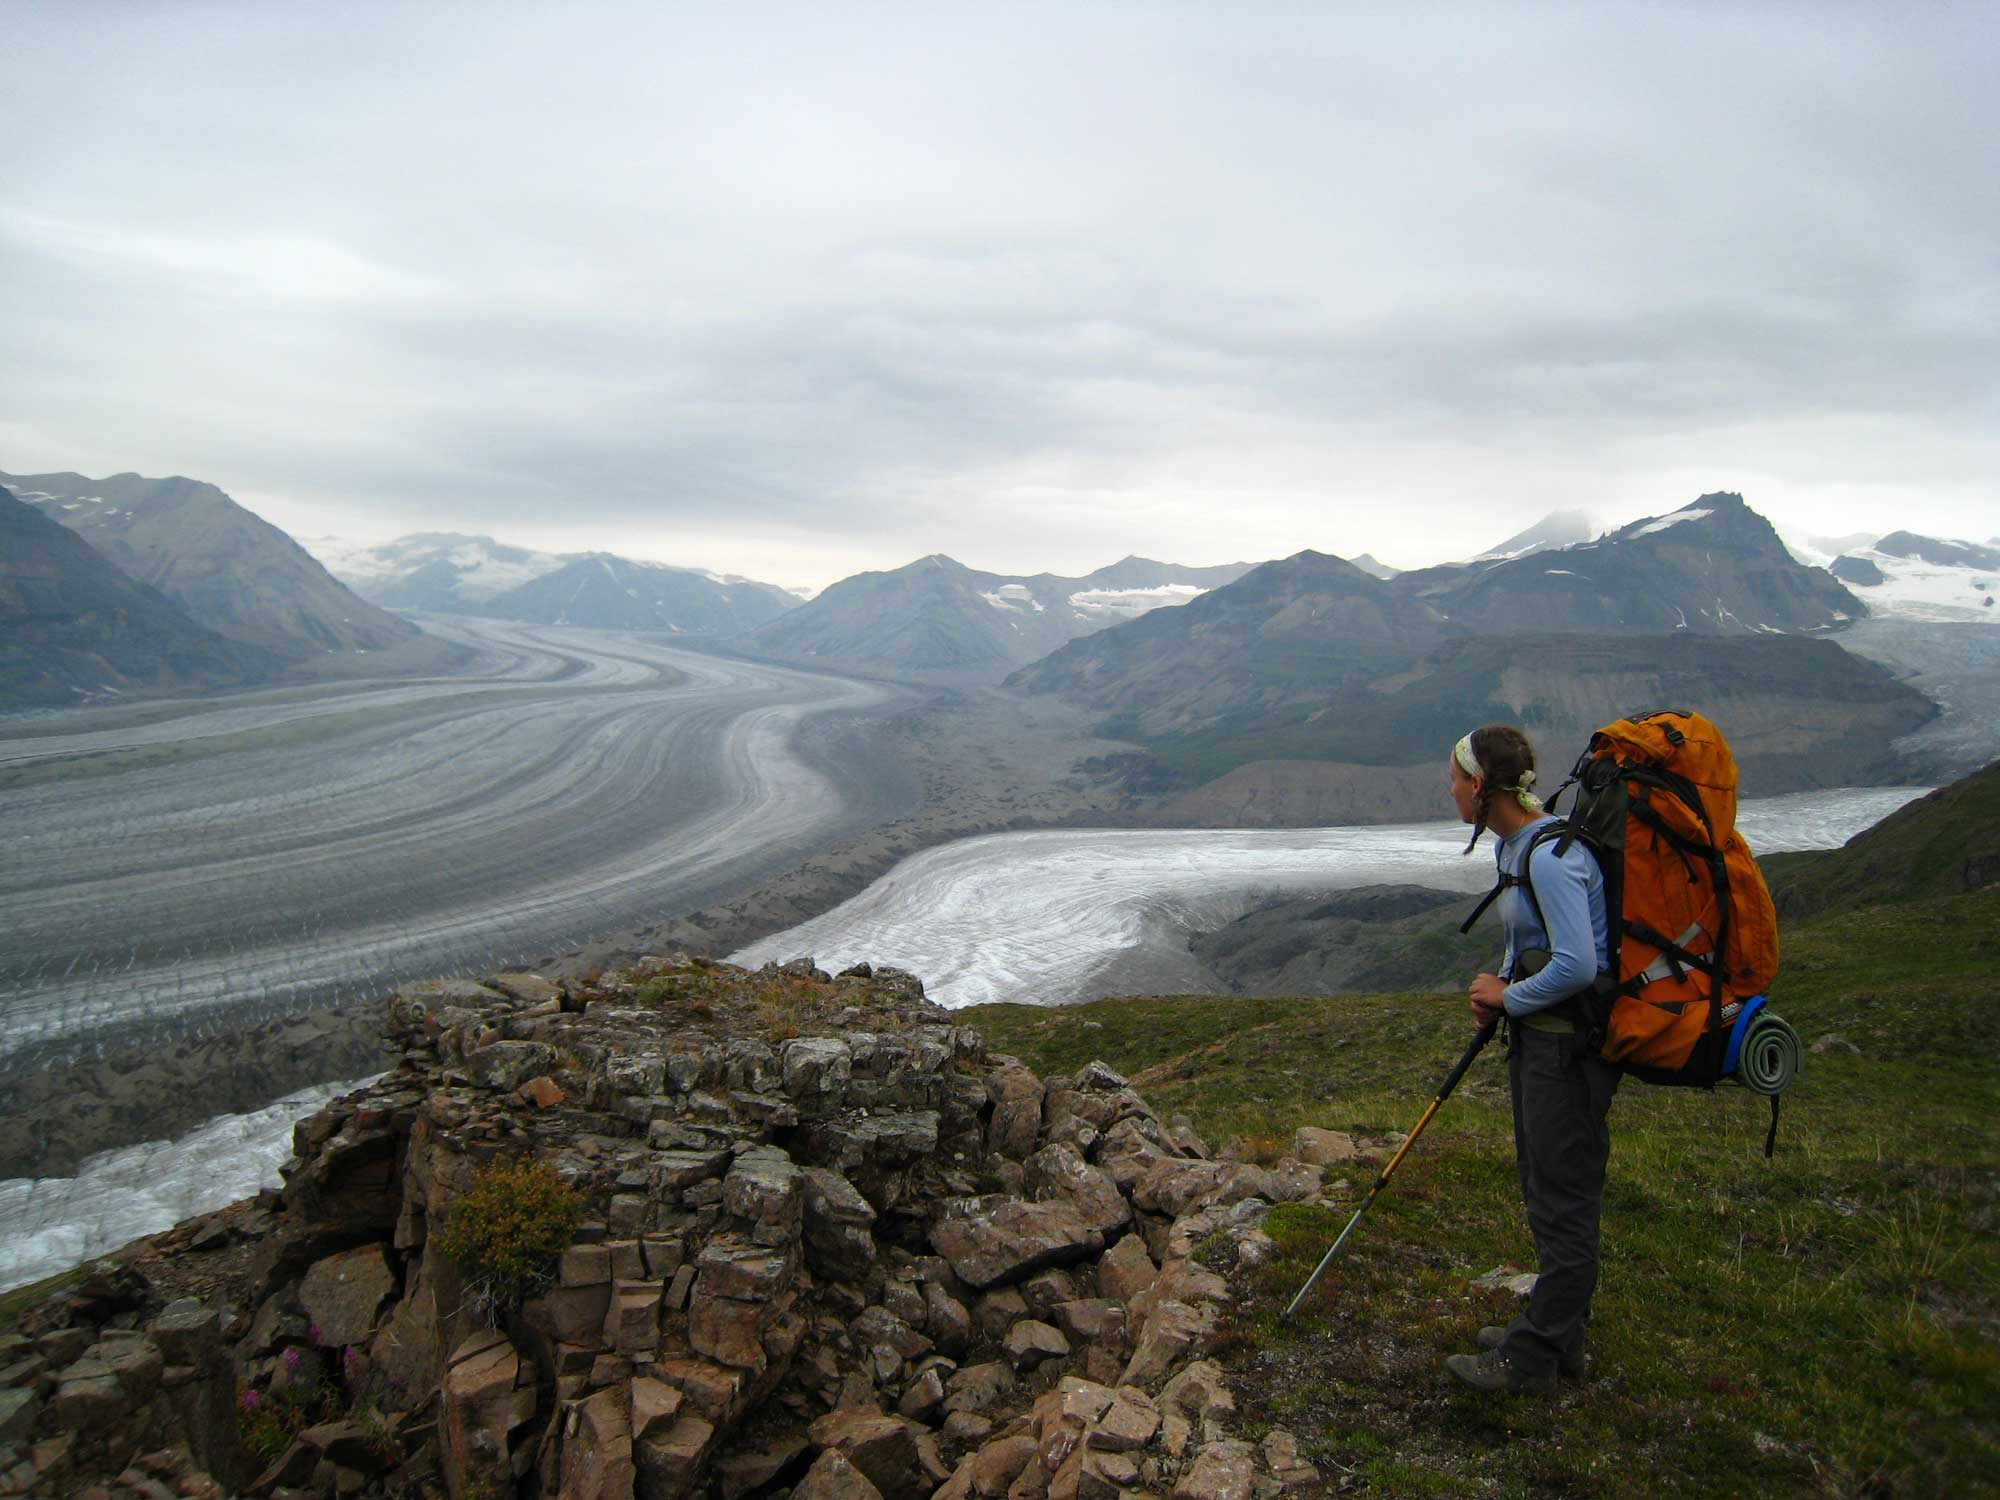 Backpacking in the Wrangells. Photo by Greg Runyan